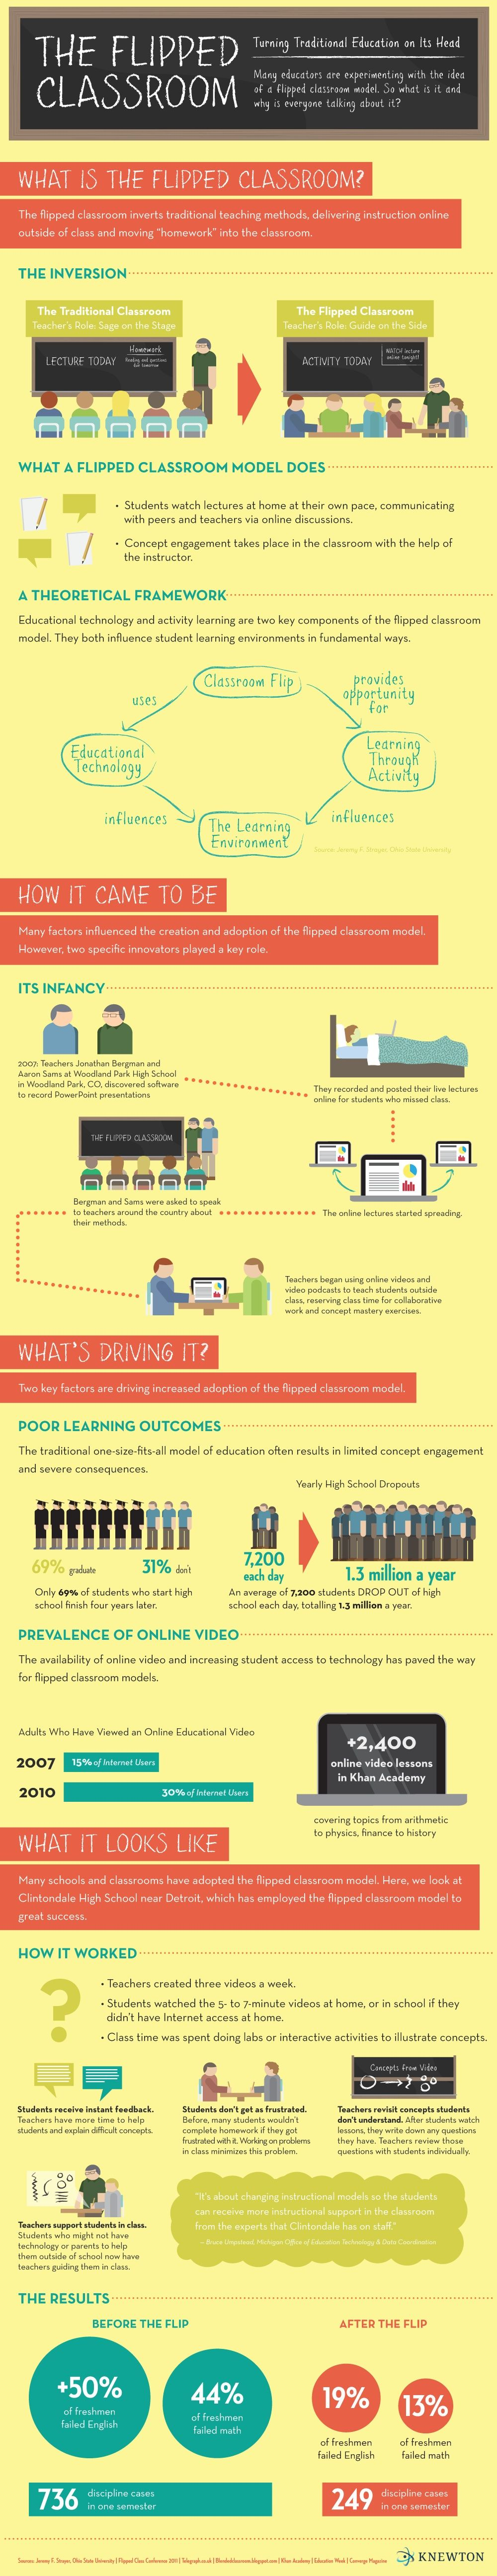 Active learning infographic.